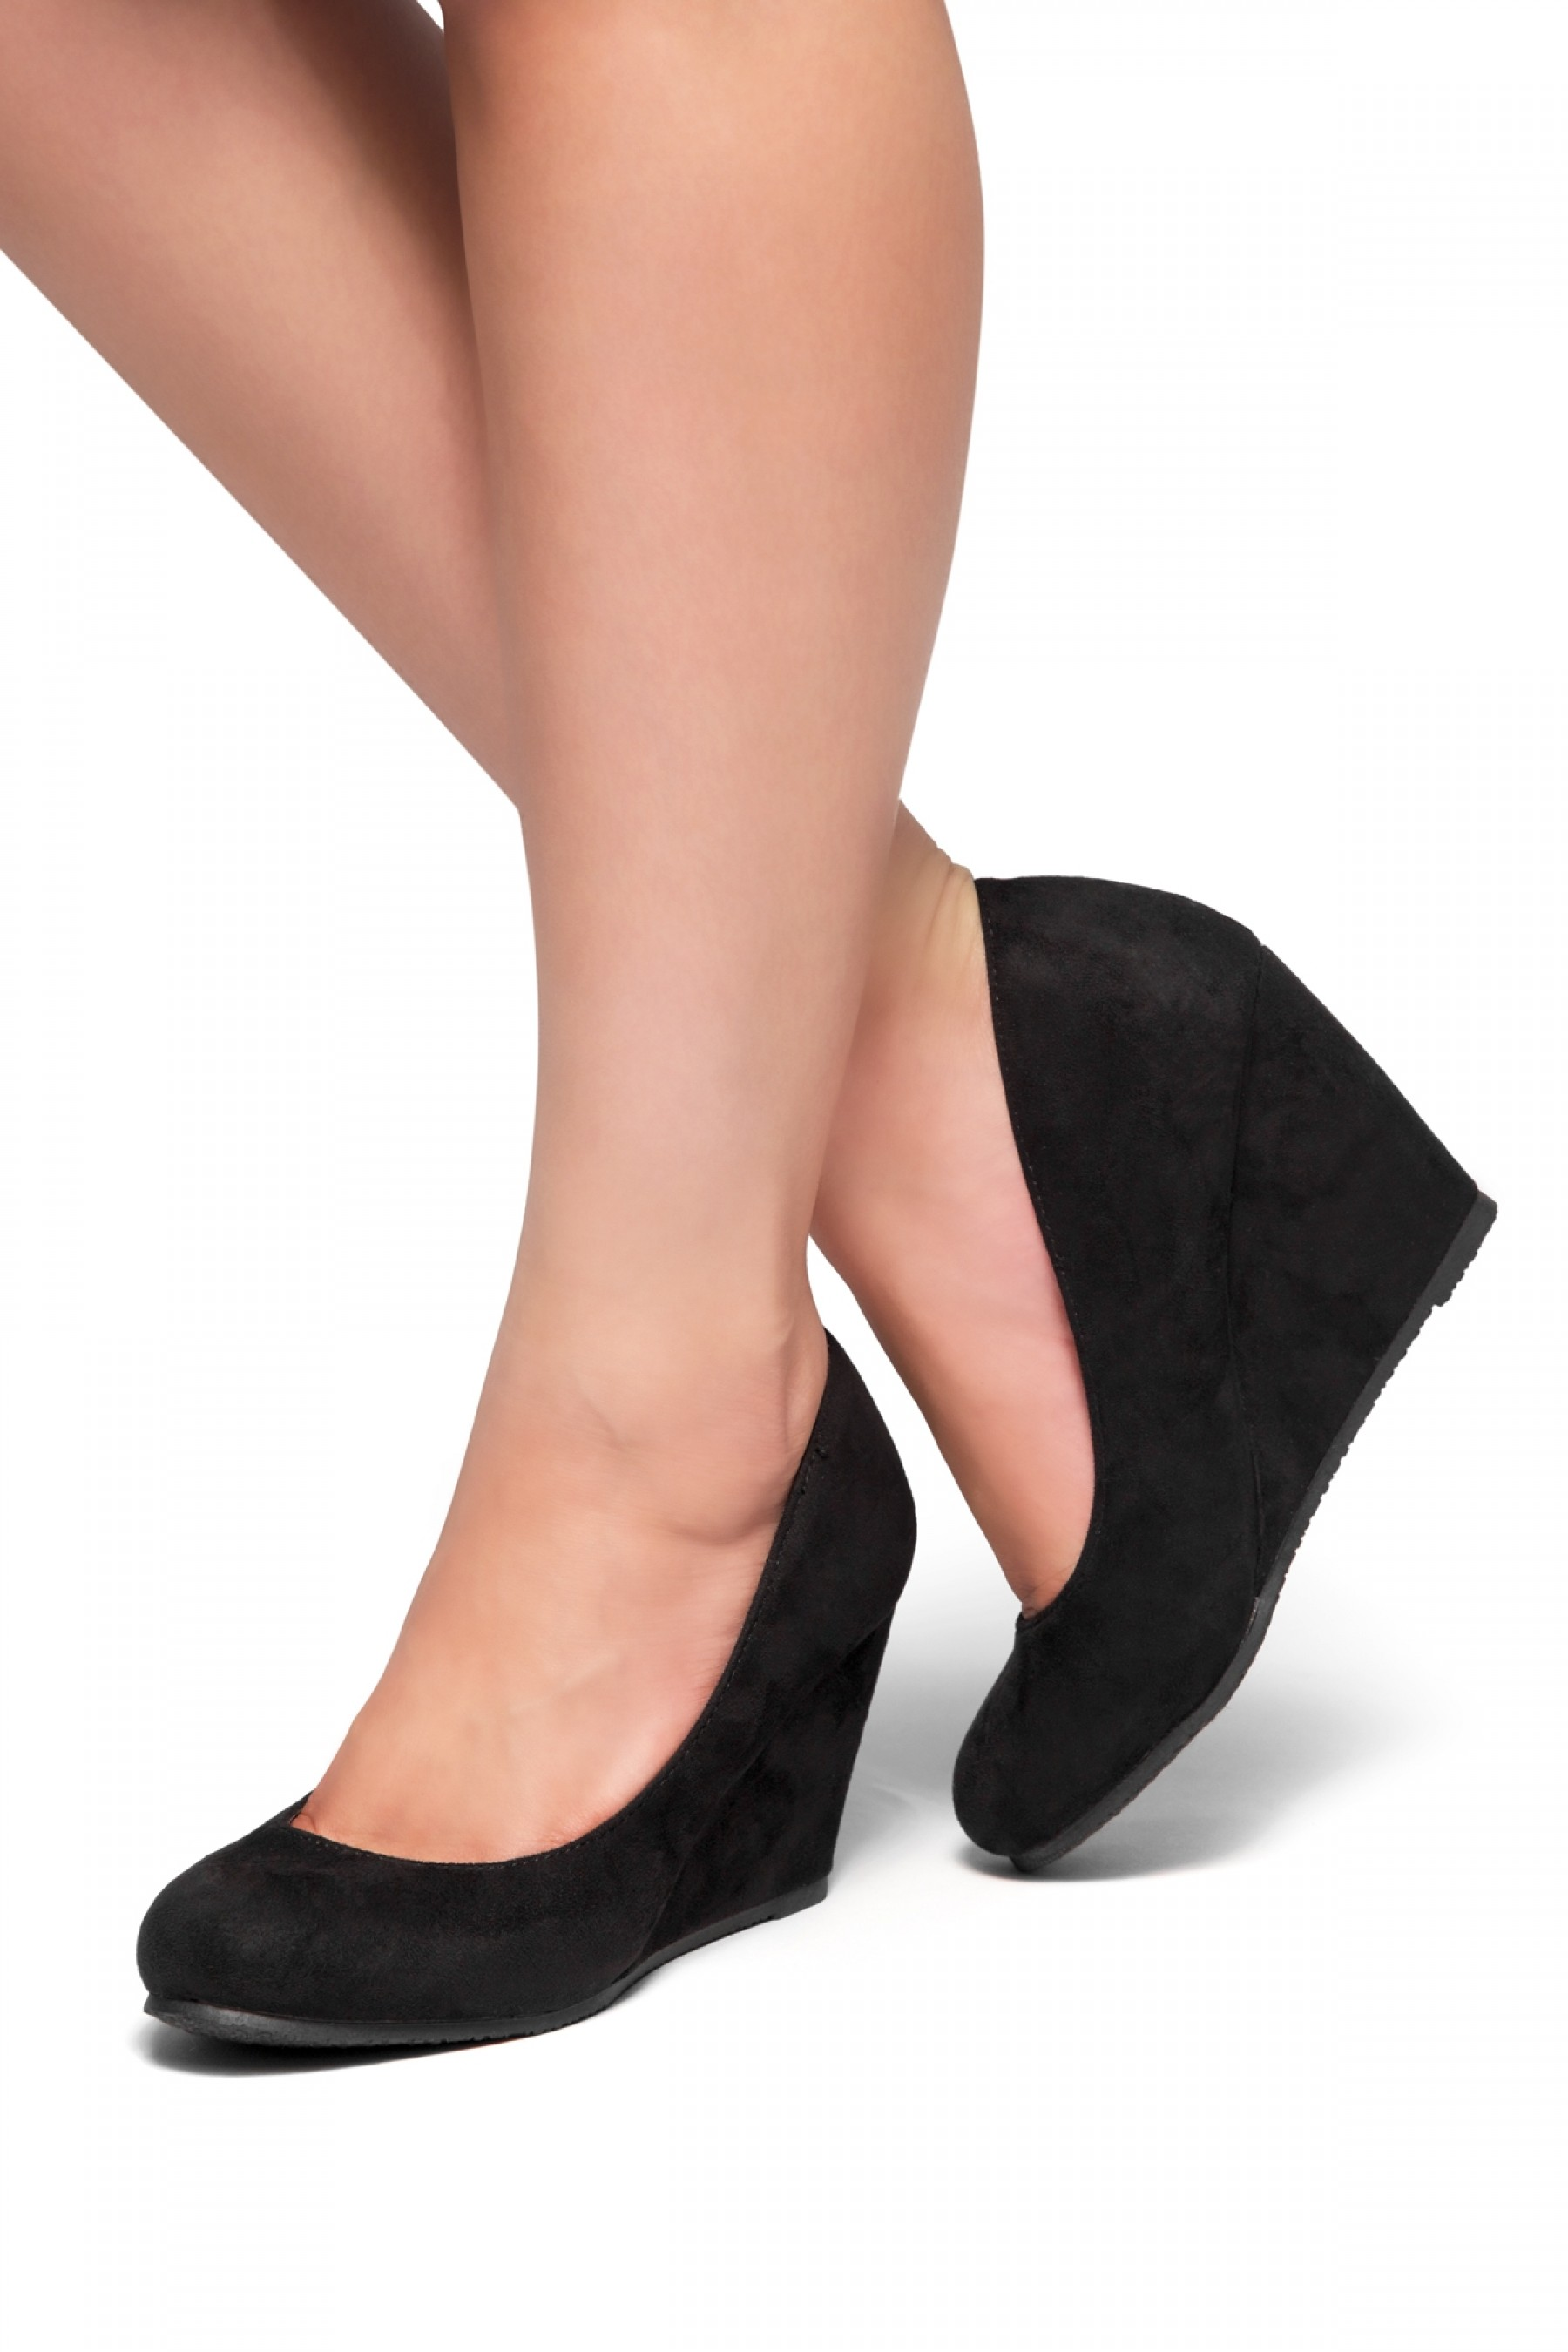 Image result for wedge shoes black